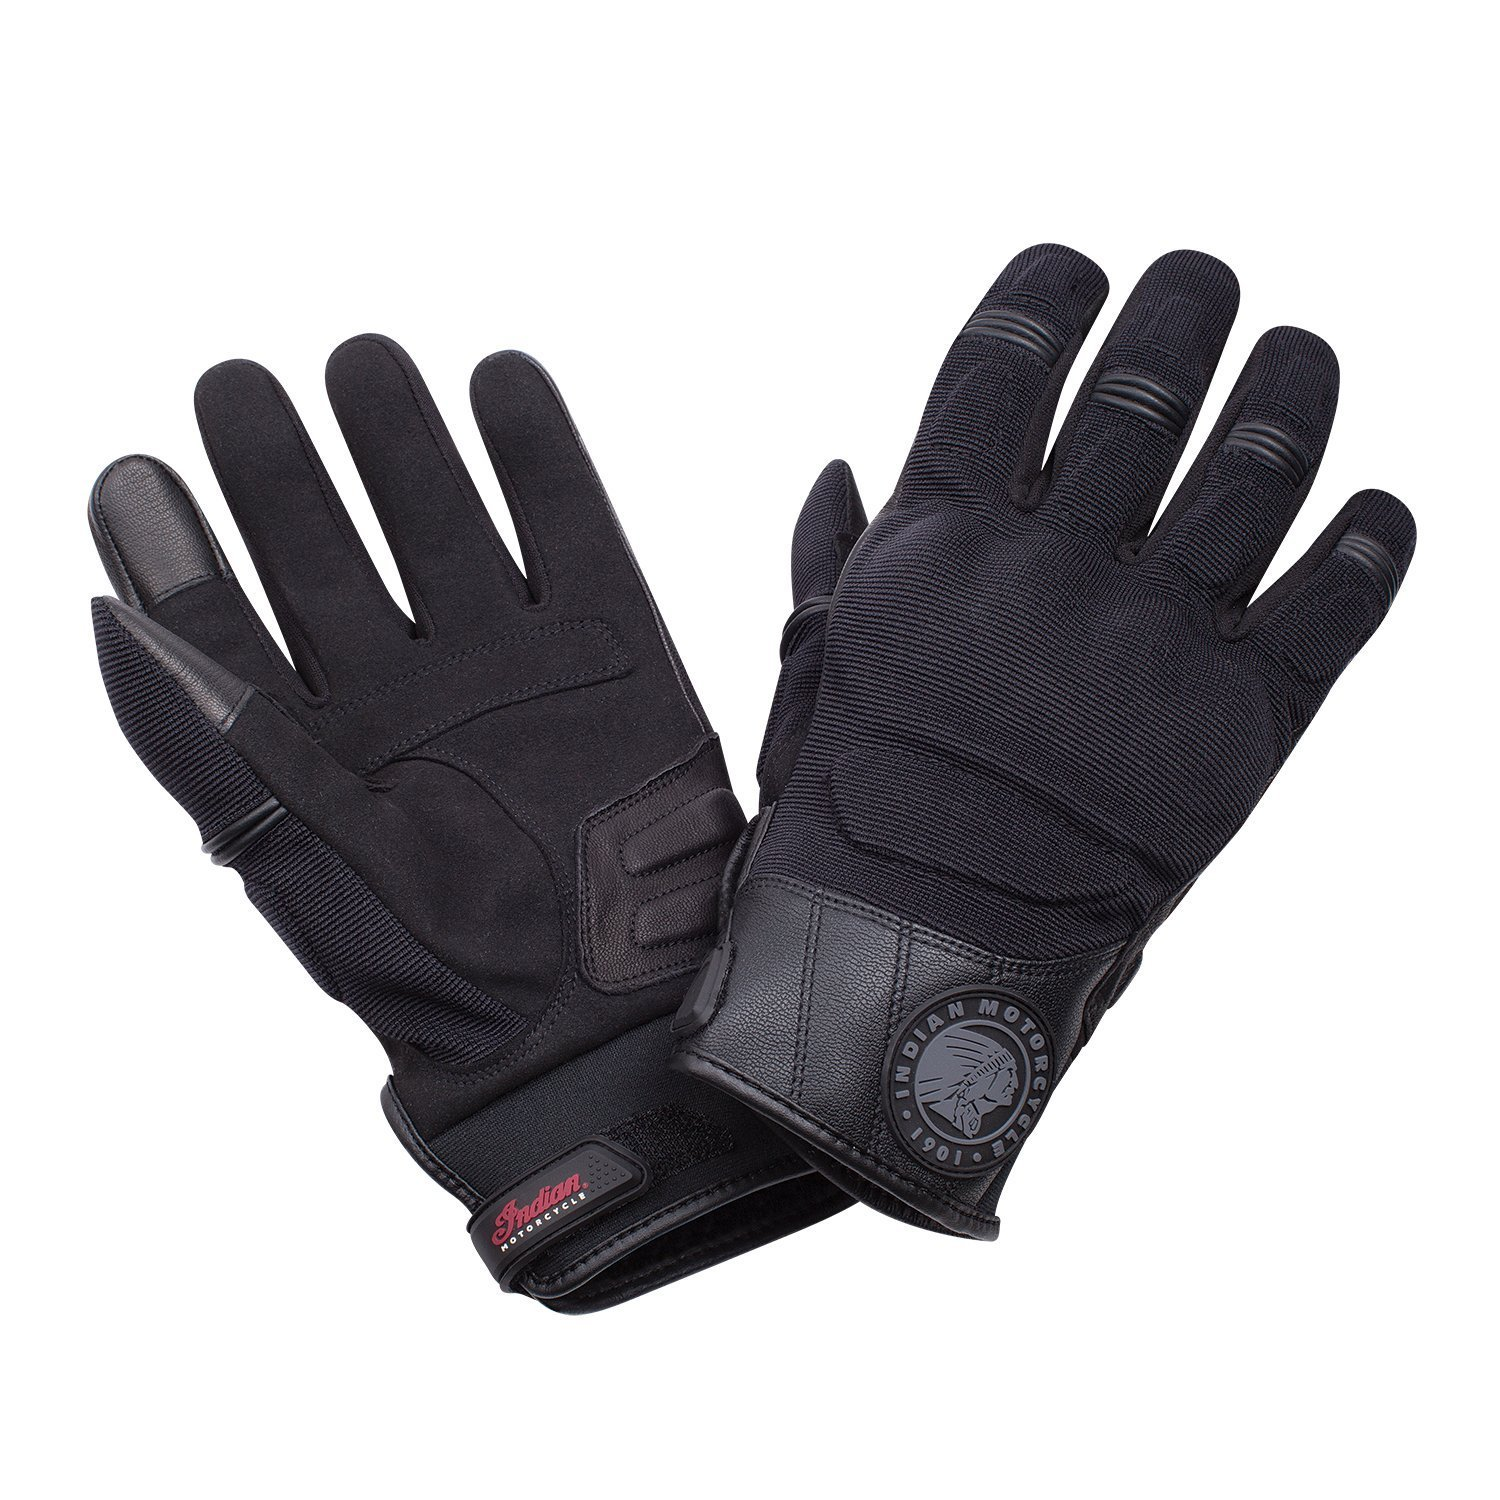 Men's Passage Riding Gloves with Hard Knuckles, Black